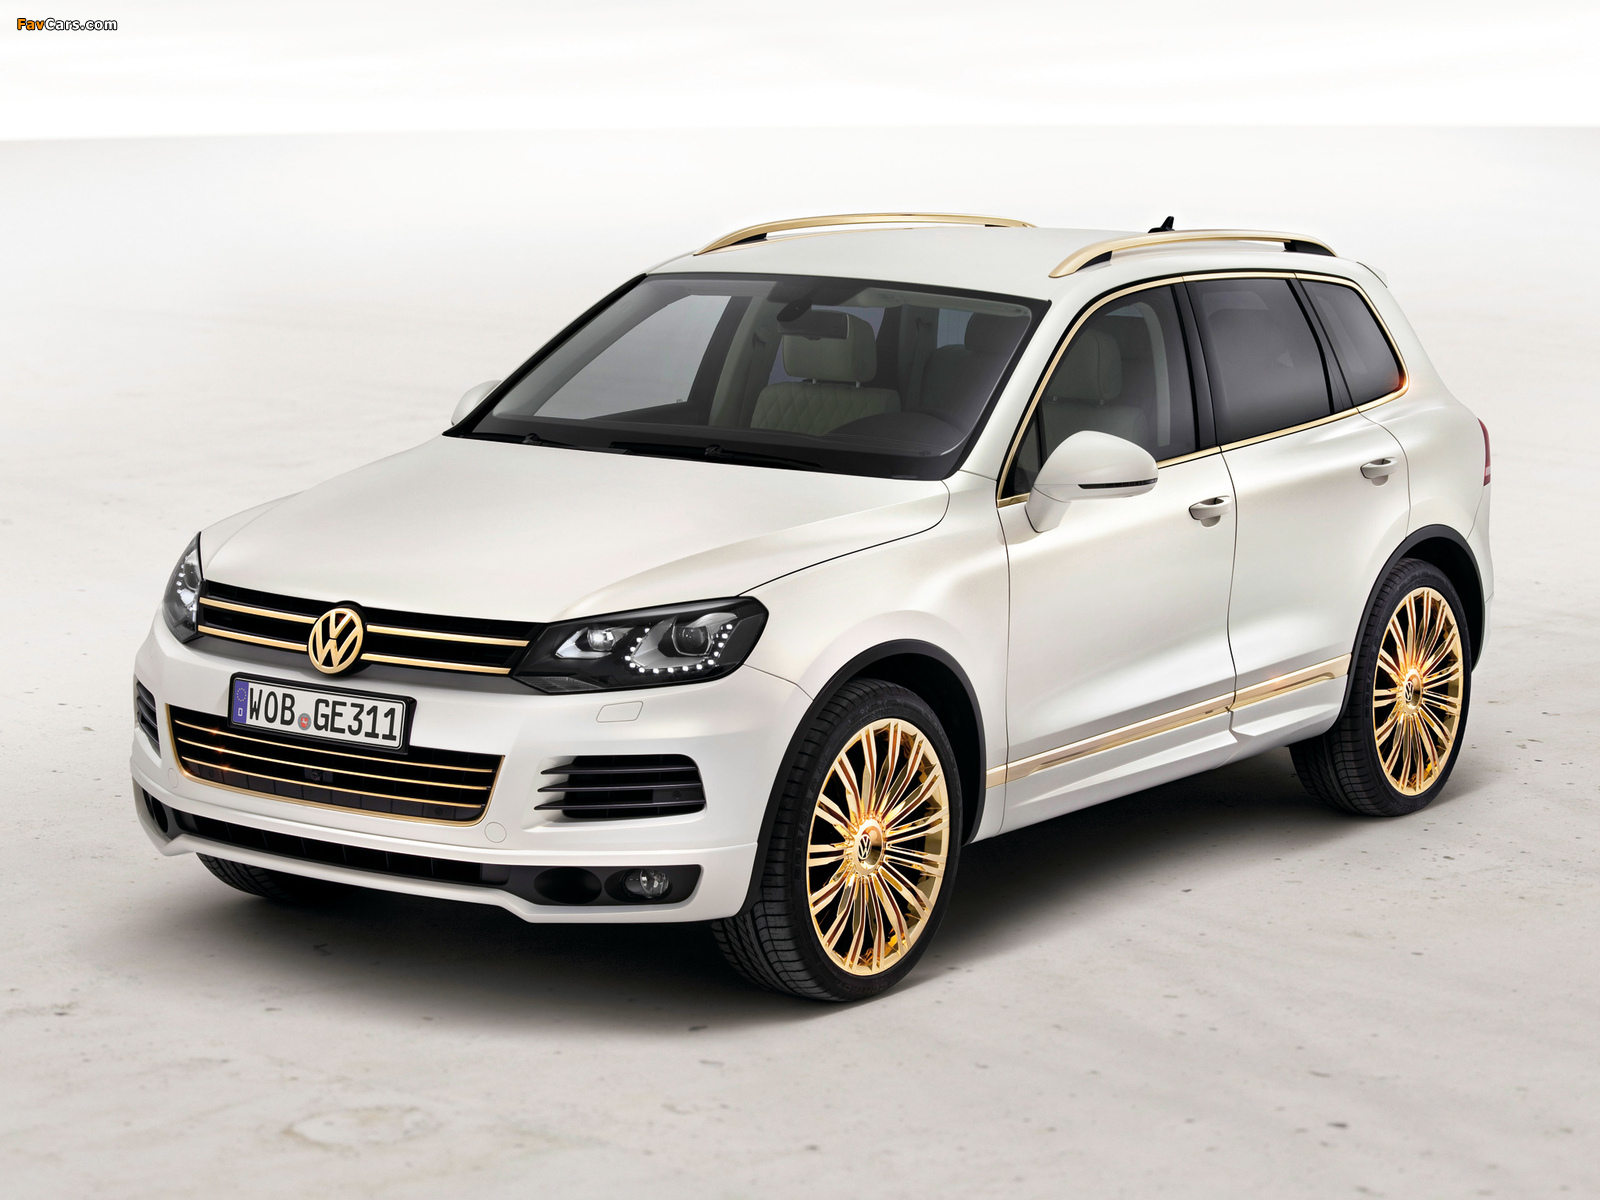 Volkswagen Touareg V8 TDI Gold Edition Concept 2011 wallpapers (1600 x 1200)